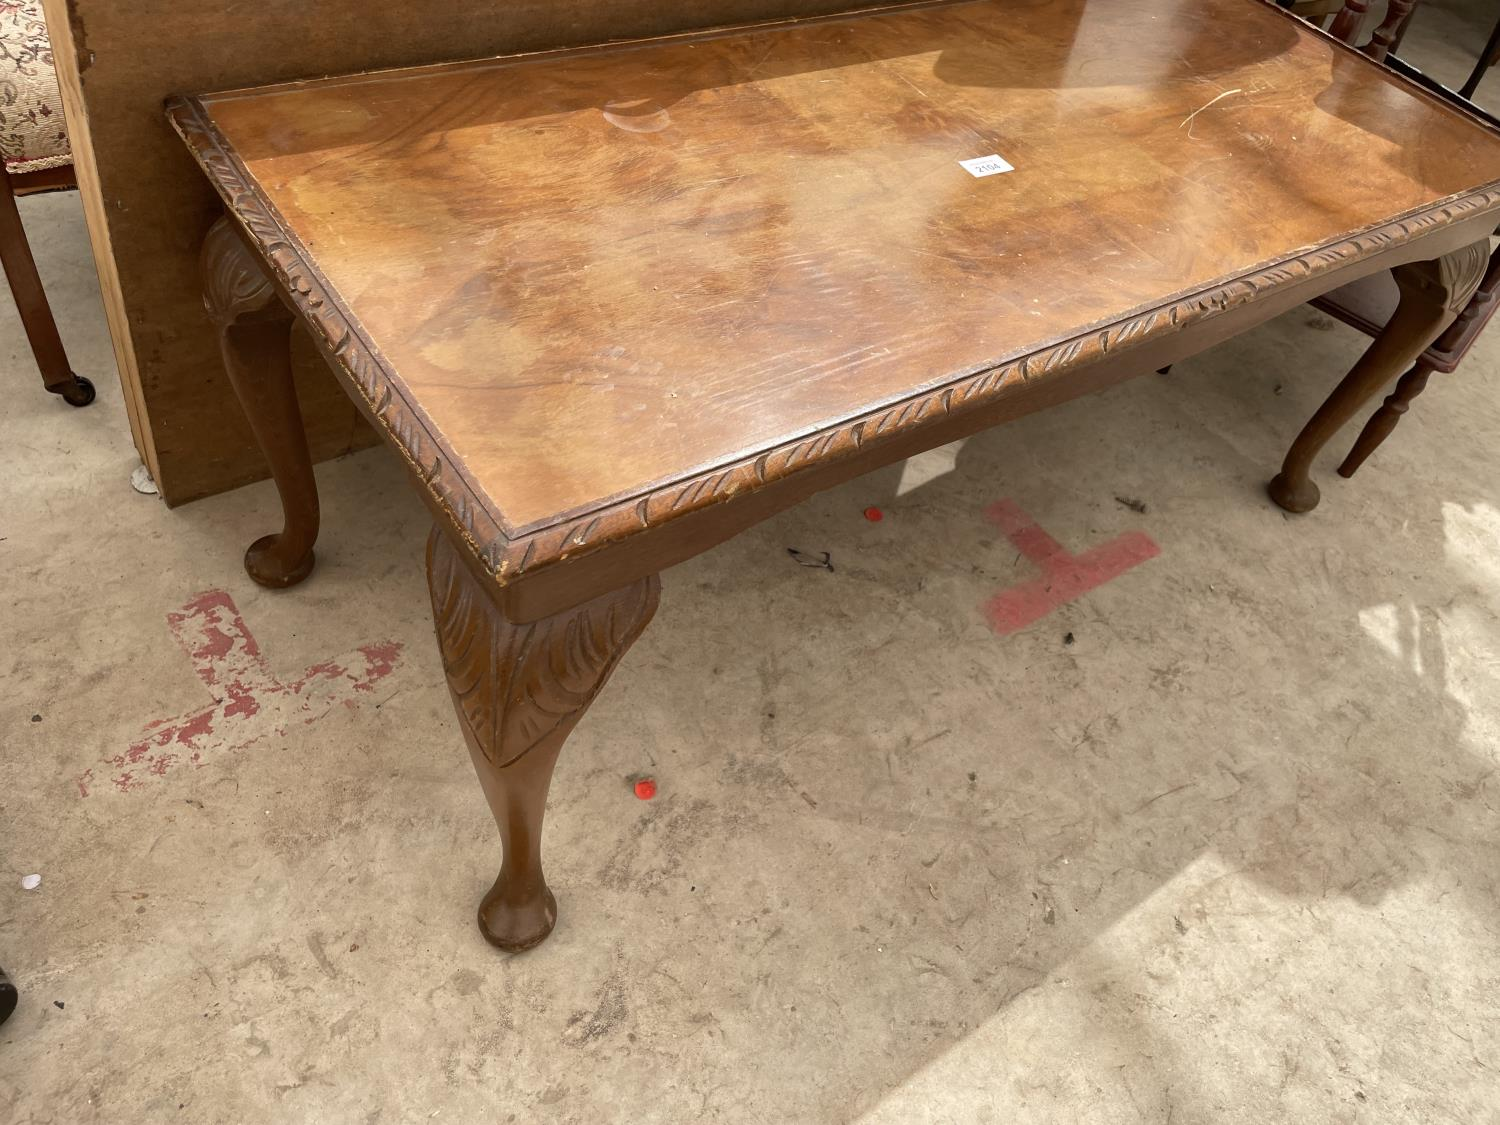 A PASTING TABLE, CORNER WHATNOT, TWO TIER TABLE AND WALNUT COFFEE TABLE - Image 2 of 4